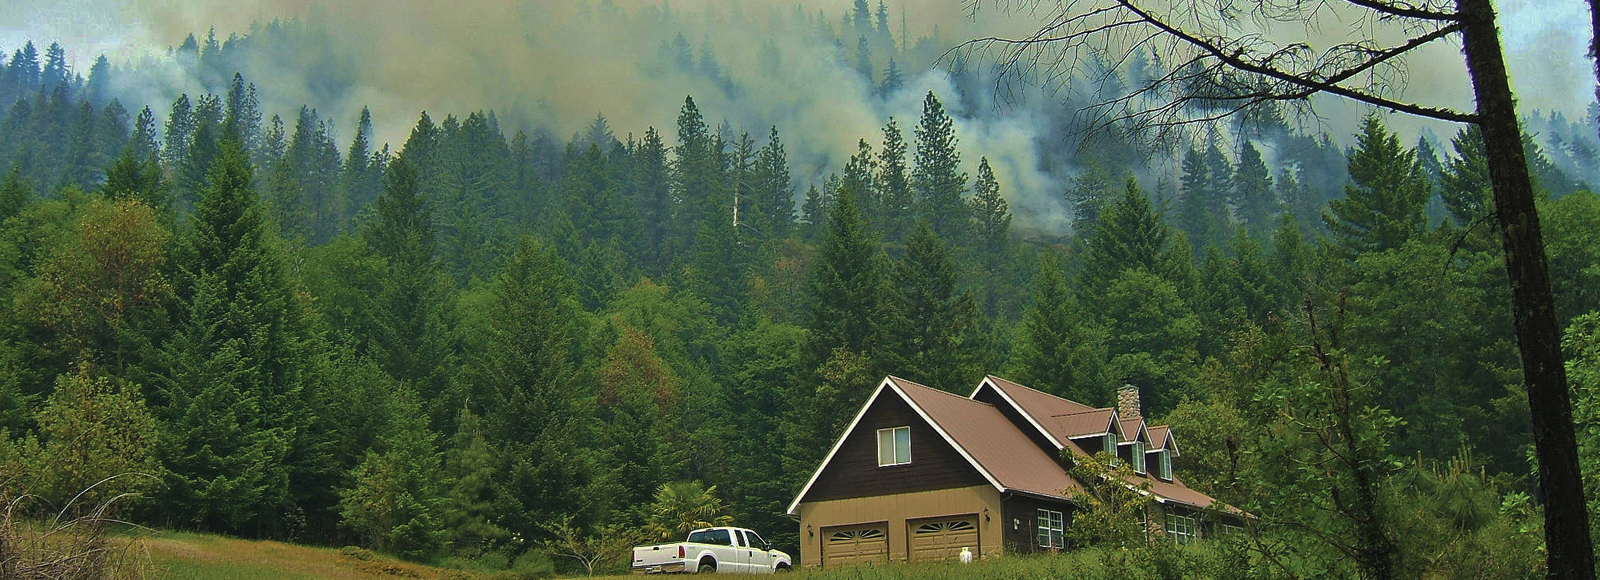 smoke rises from forested hillside above a brown house